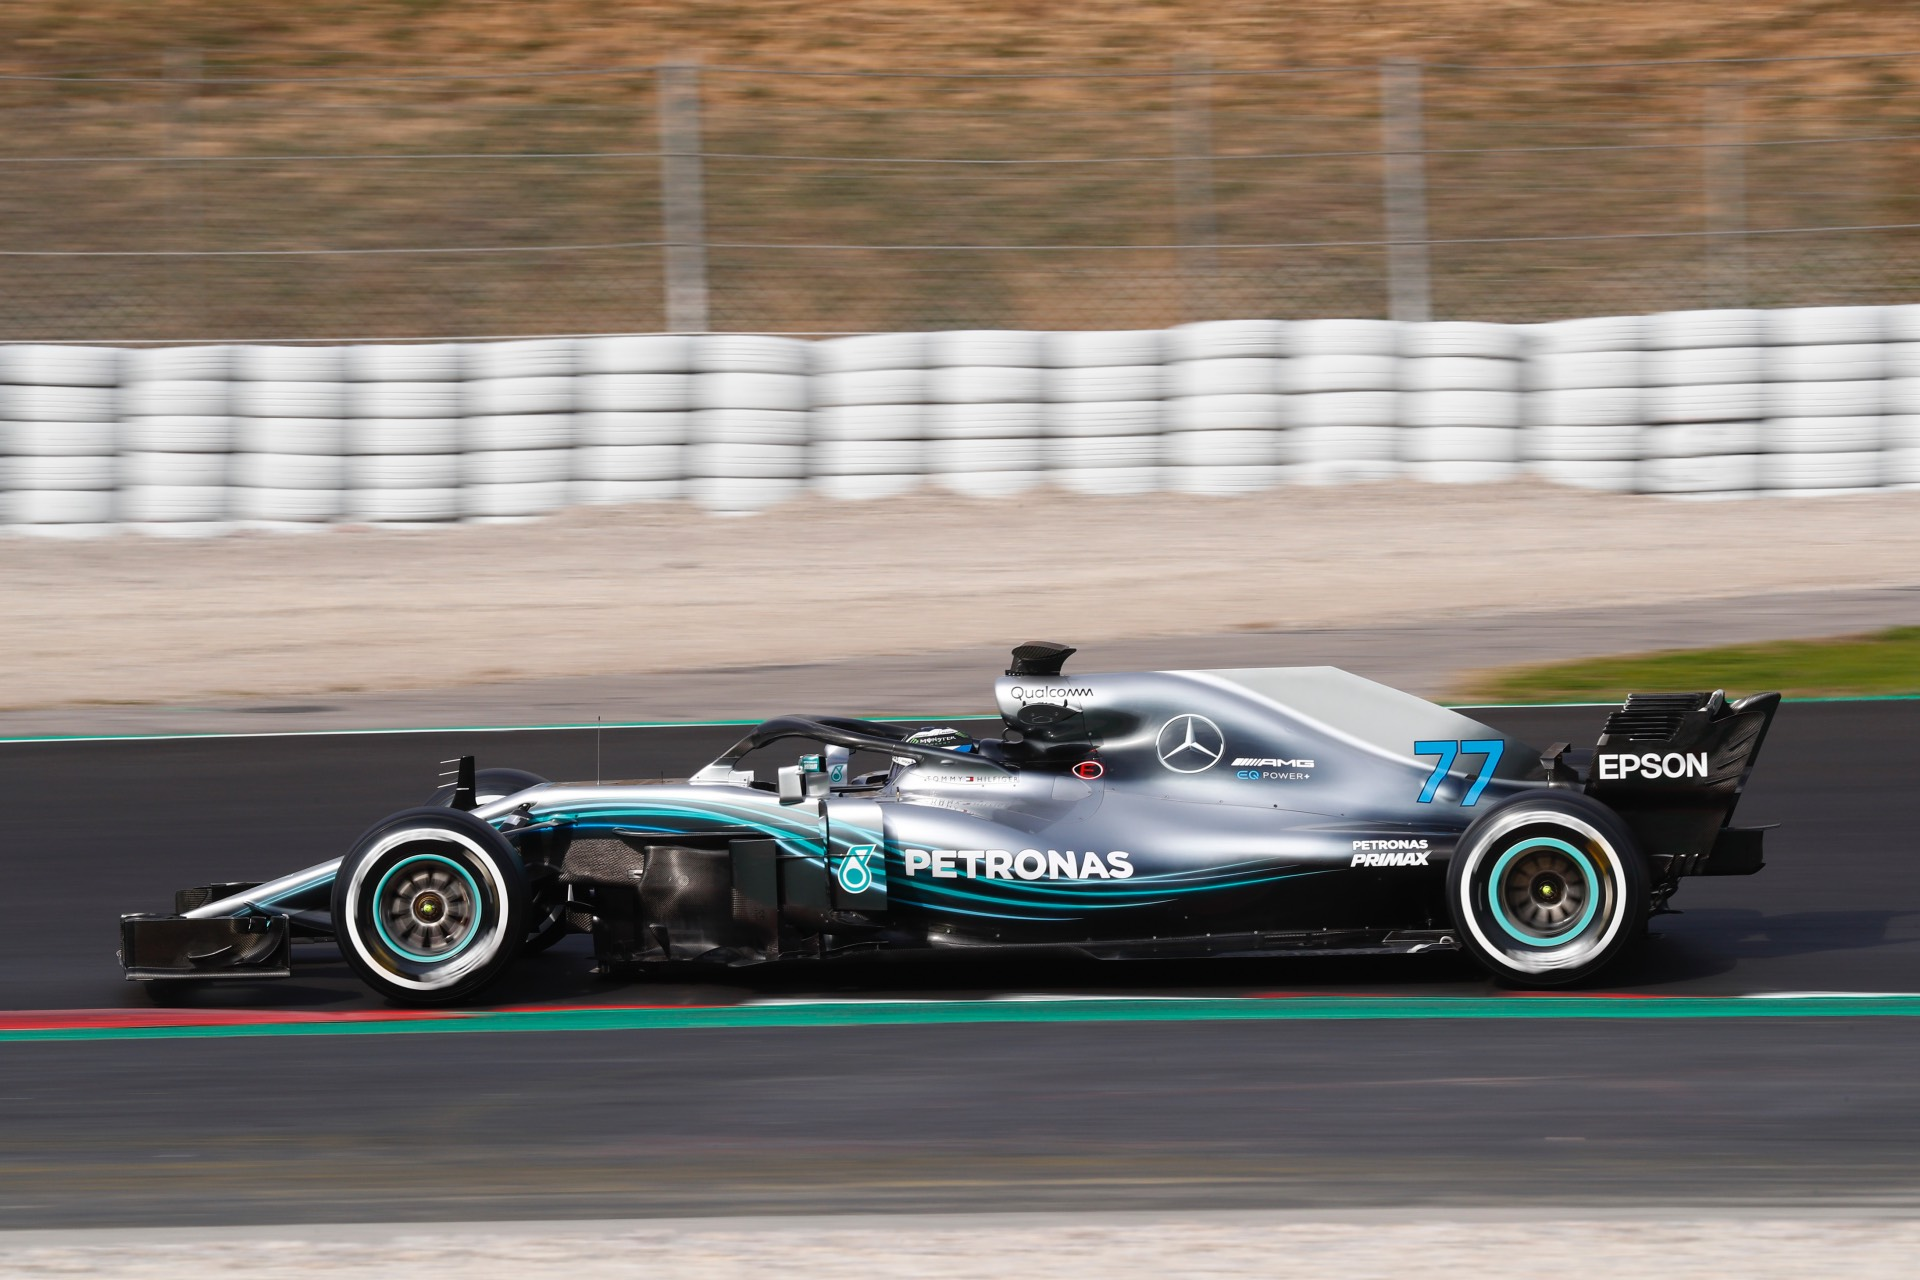 2018 Barcelona Pre-season Test 1, Day 2 - Wolfgang Wilhelm